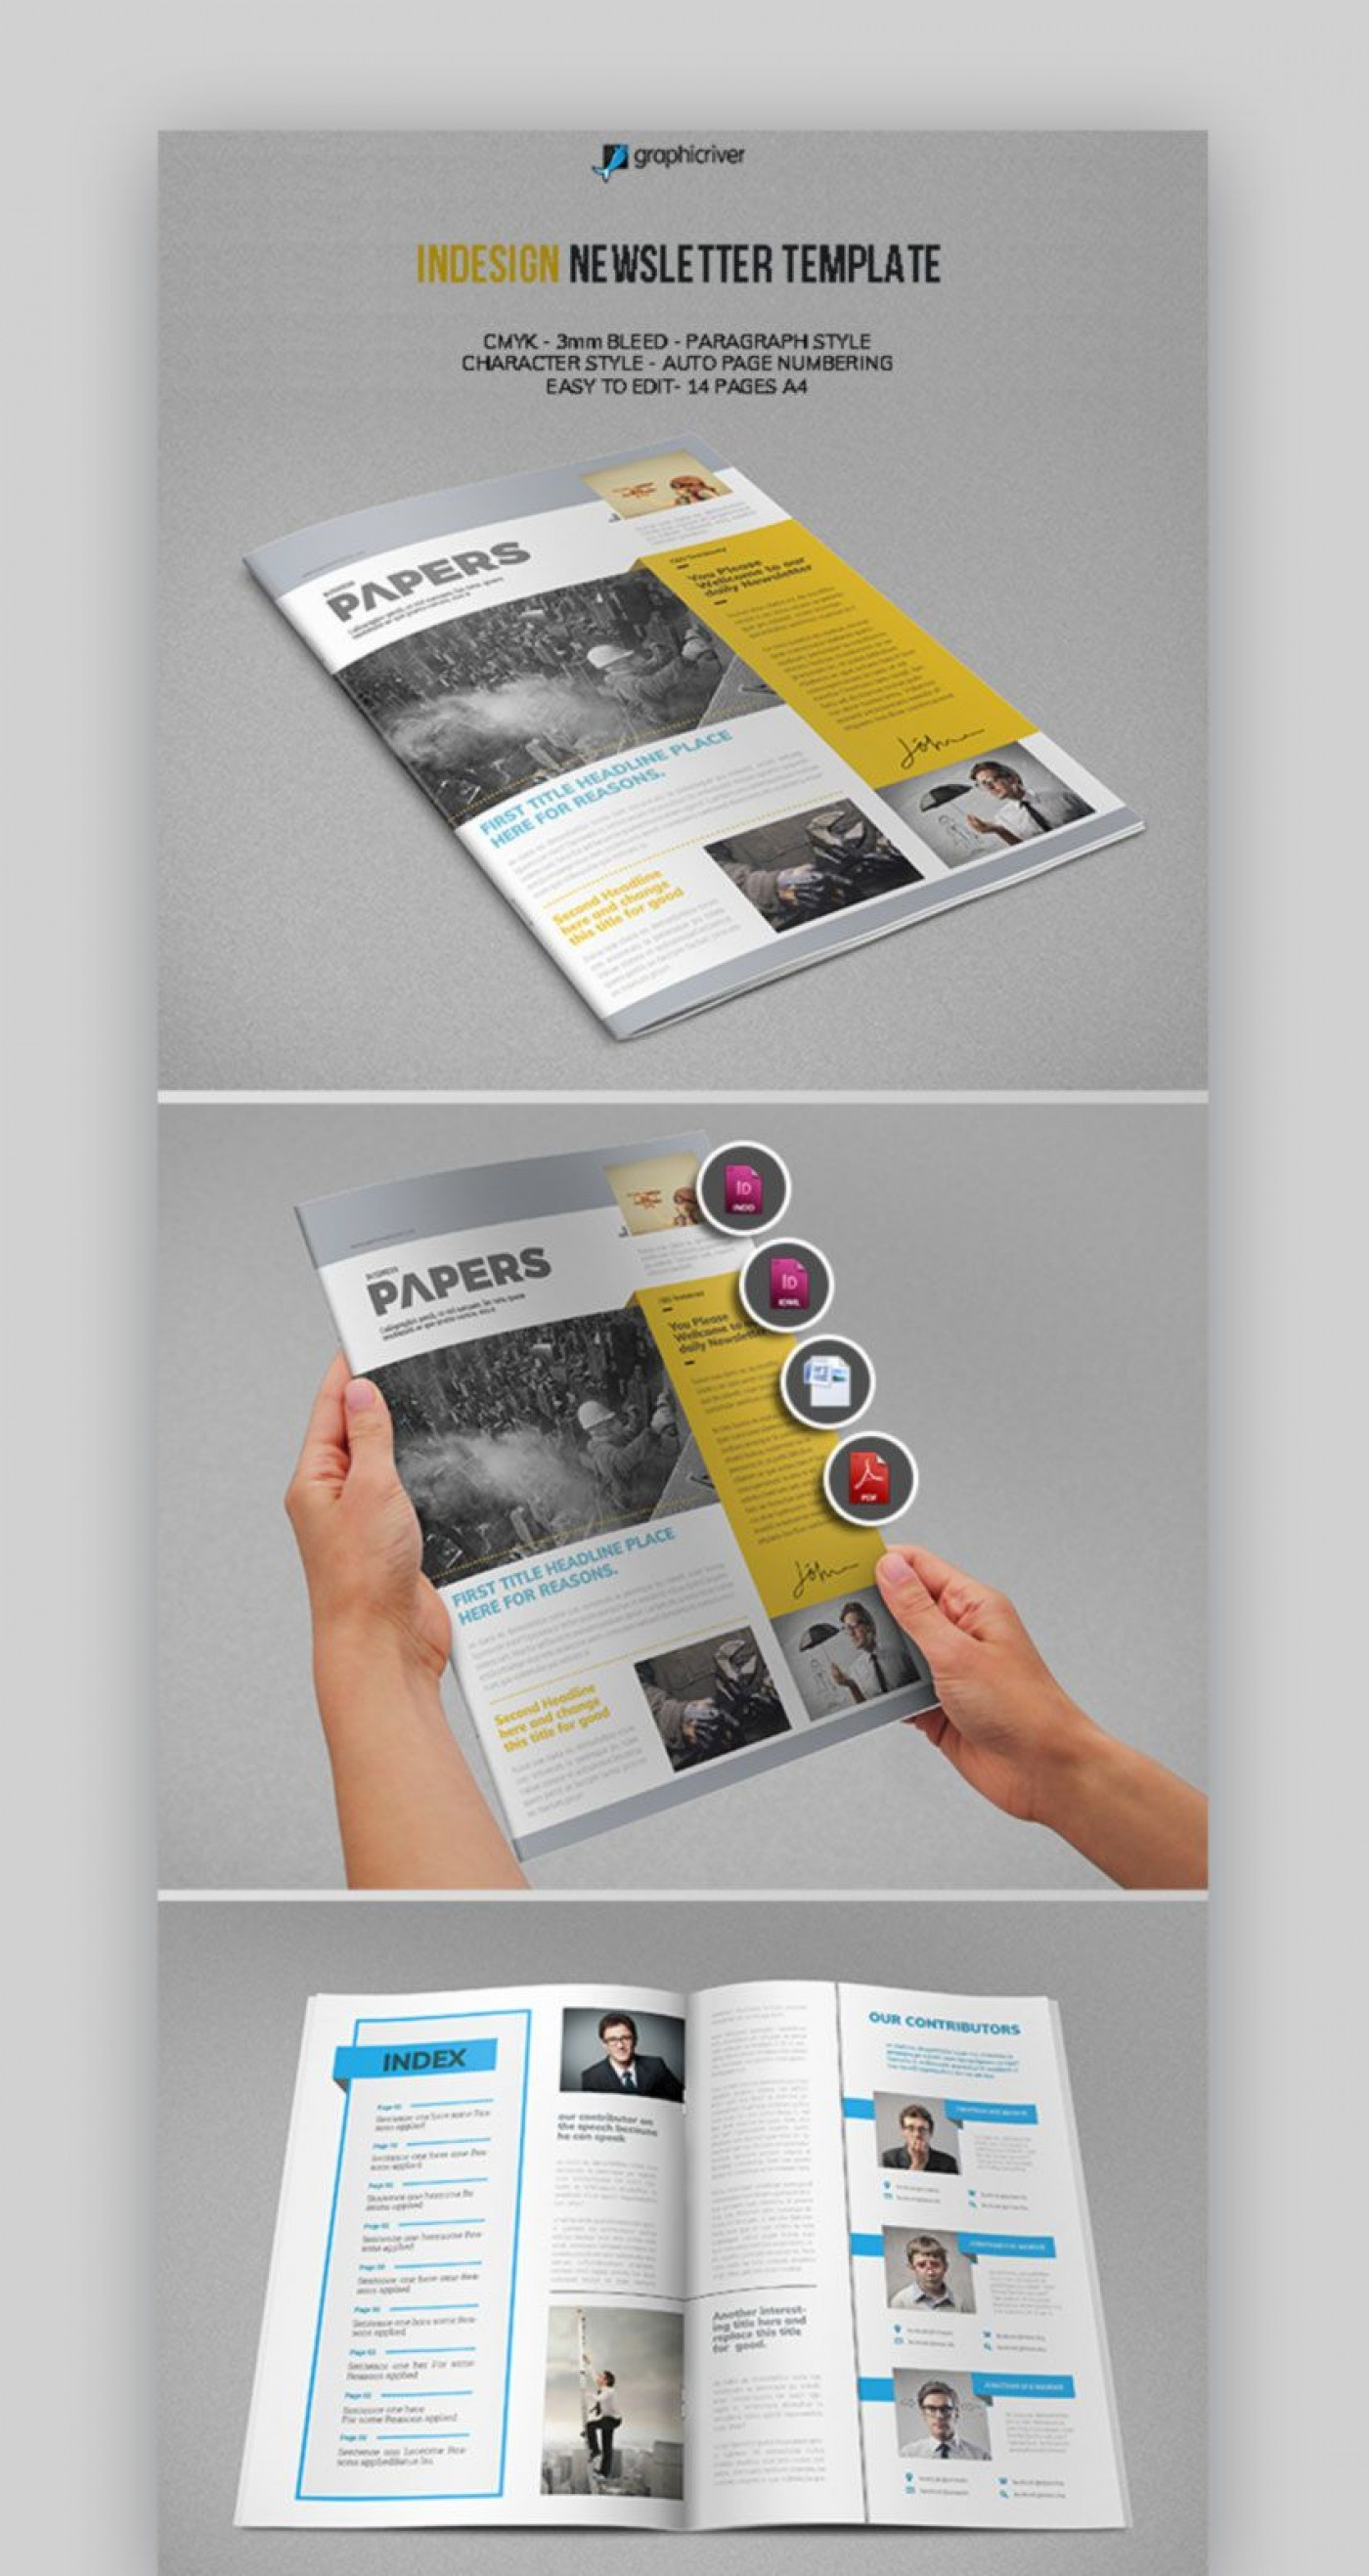 004 Phenomenal Publisher Newsletter Template Free Image  Microsoft Office Download1400